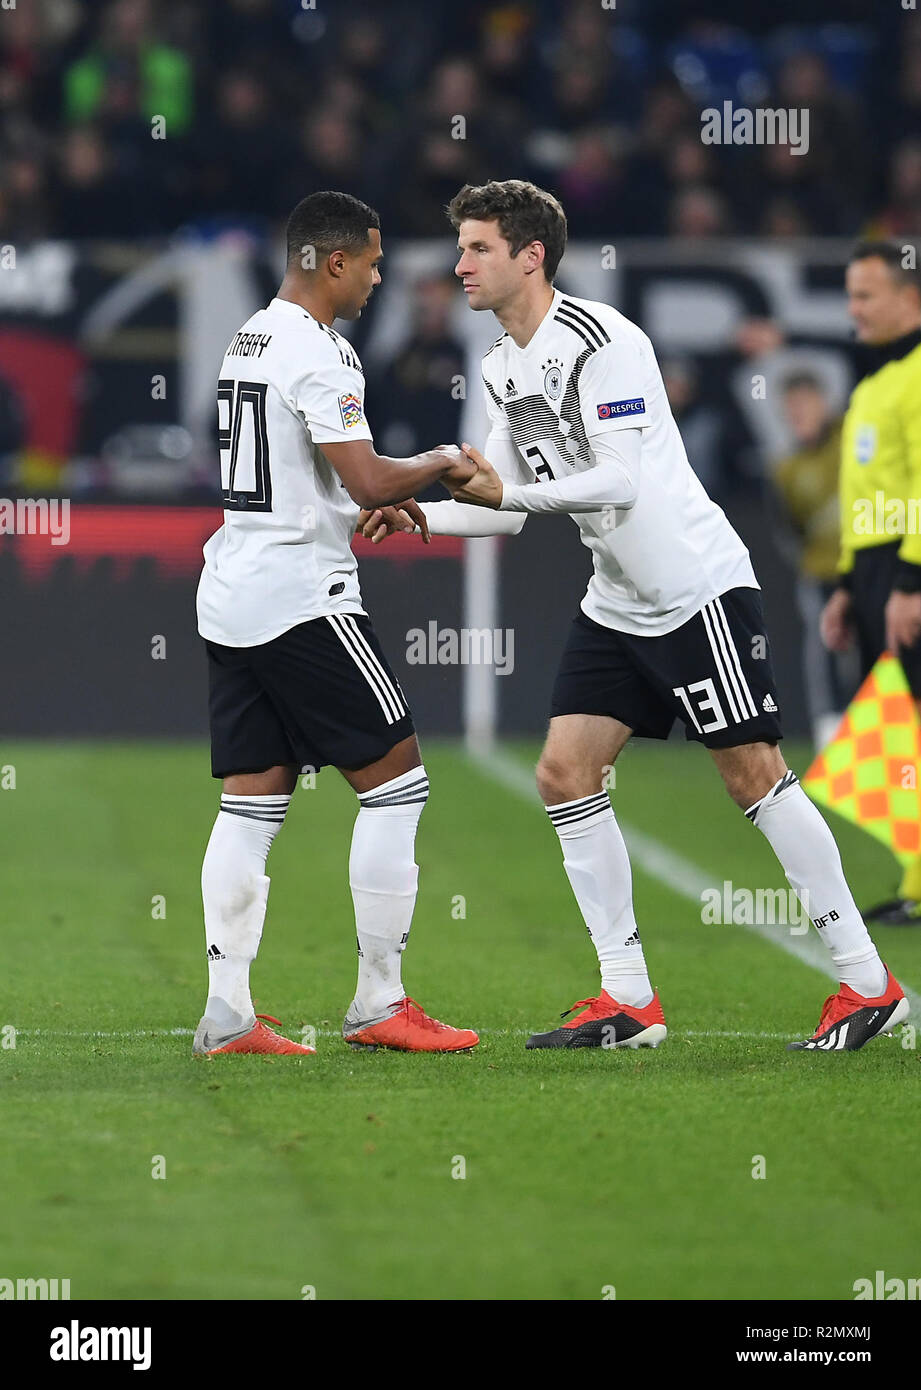 Gelsenkirchen, Deutschland. 19th Nov, 2018. Substitutions: Serge Gnabry (Germany) walks, Thomas Mueller (Germany) comes. GES/Football/Nations League: Germany - Netherlands, 19.11.2018 Football/Soccer: Nations League: Germany vs Netherlands, Gelsenkirchen, November 19, 2018   usage worldwide Credit: dpa/Alamy Live News - Stock Image